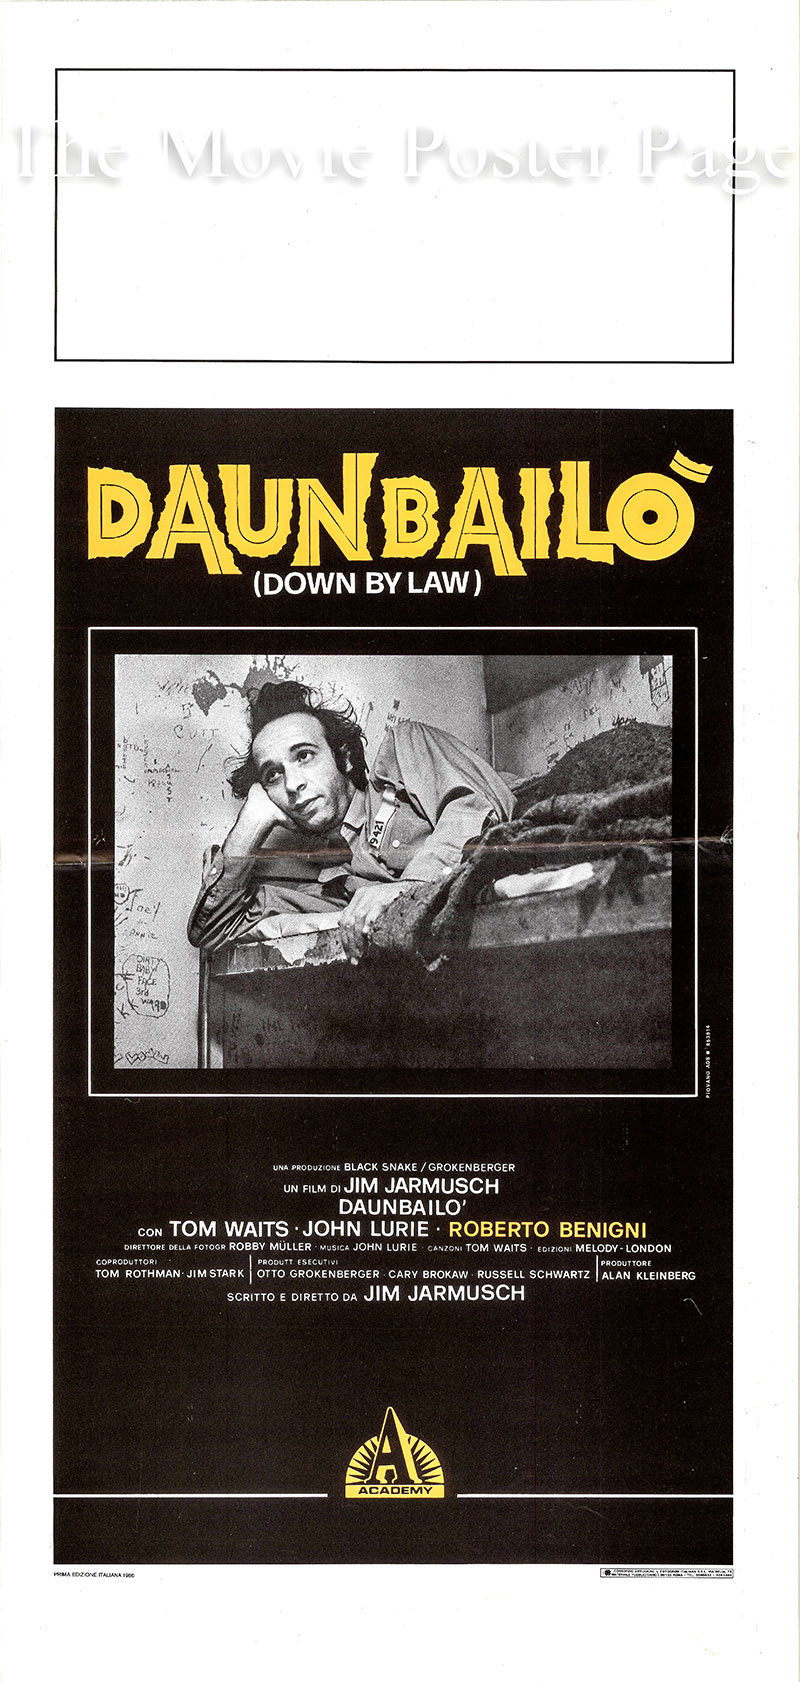 Pictured is an Italian locandina poster for the 1986 film <i>Down by Law</i> written and directed by Jim Jarmusch and starring Tom Waits as Zack.